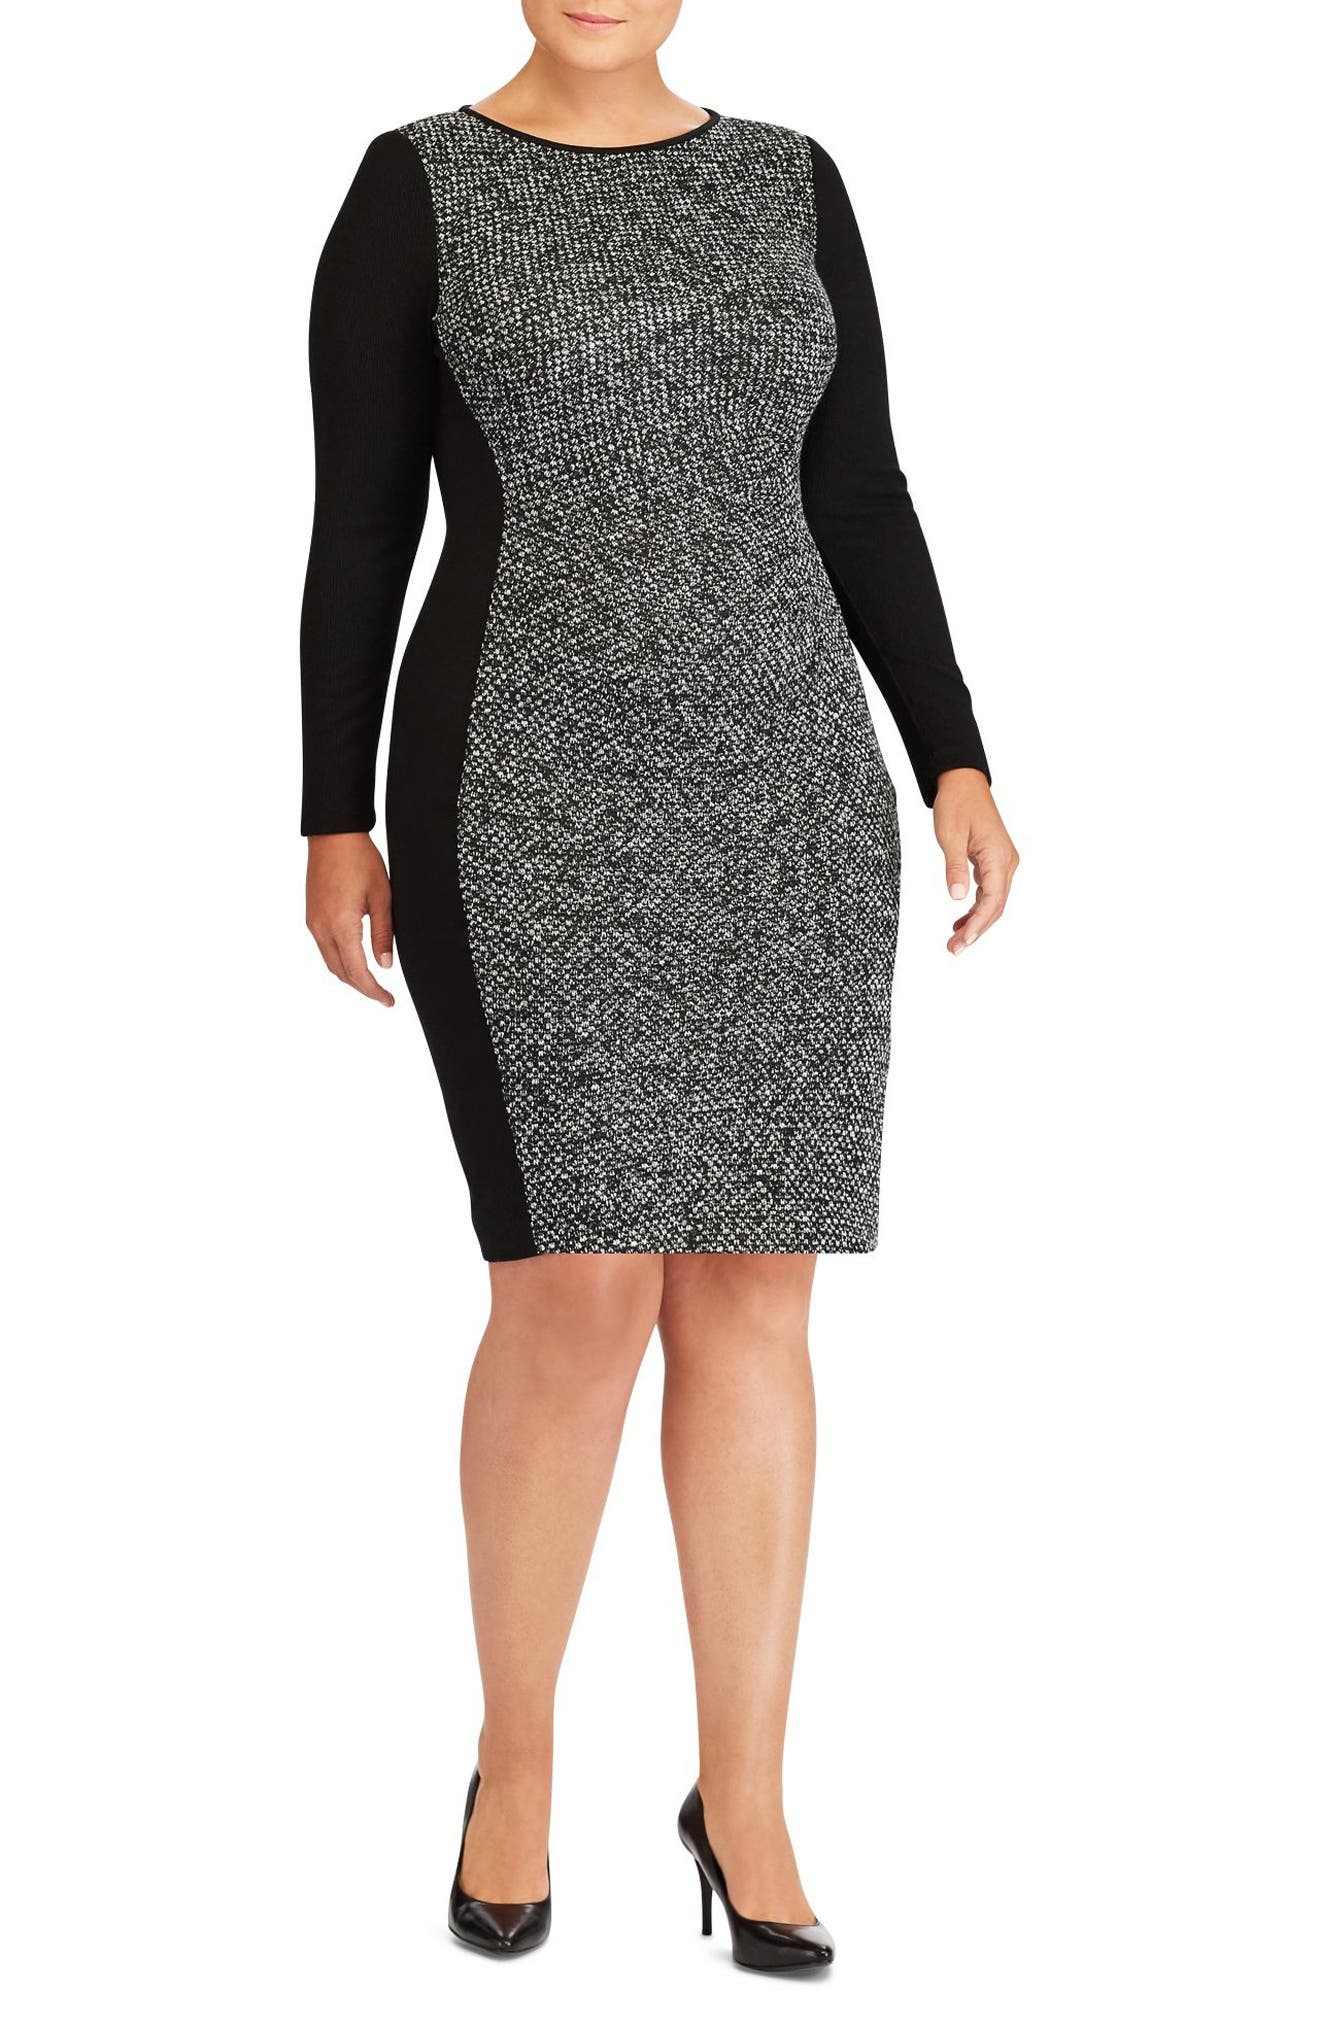 Alternate Image 1 Selected - Lauren Ralph Lauren Colorblock Jersey Sheath Dress (Plus Size)